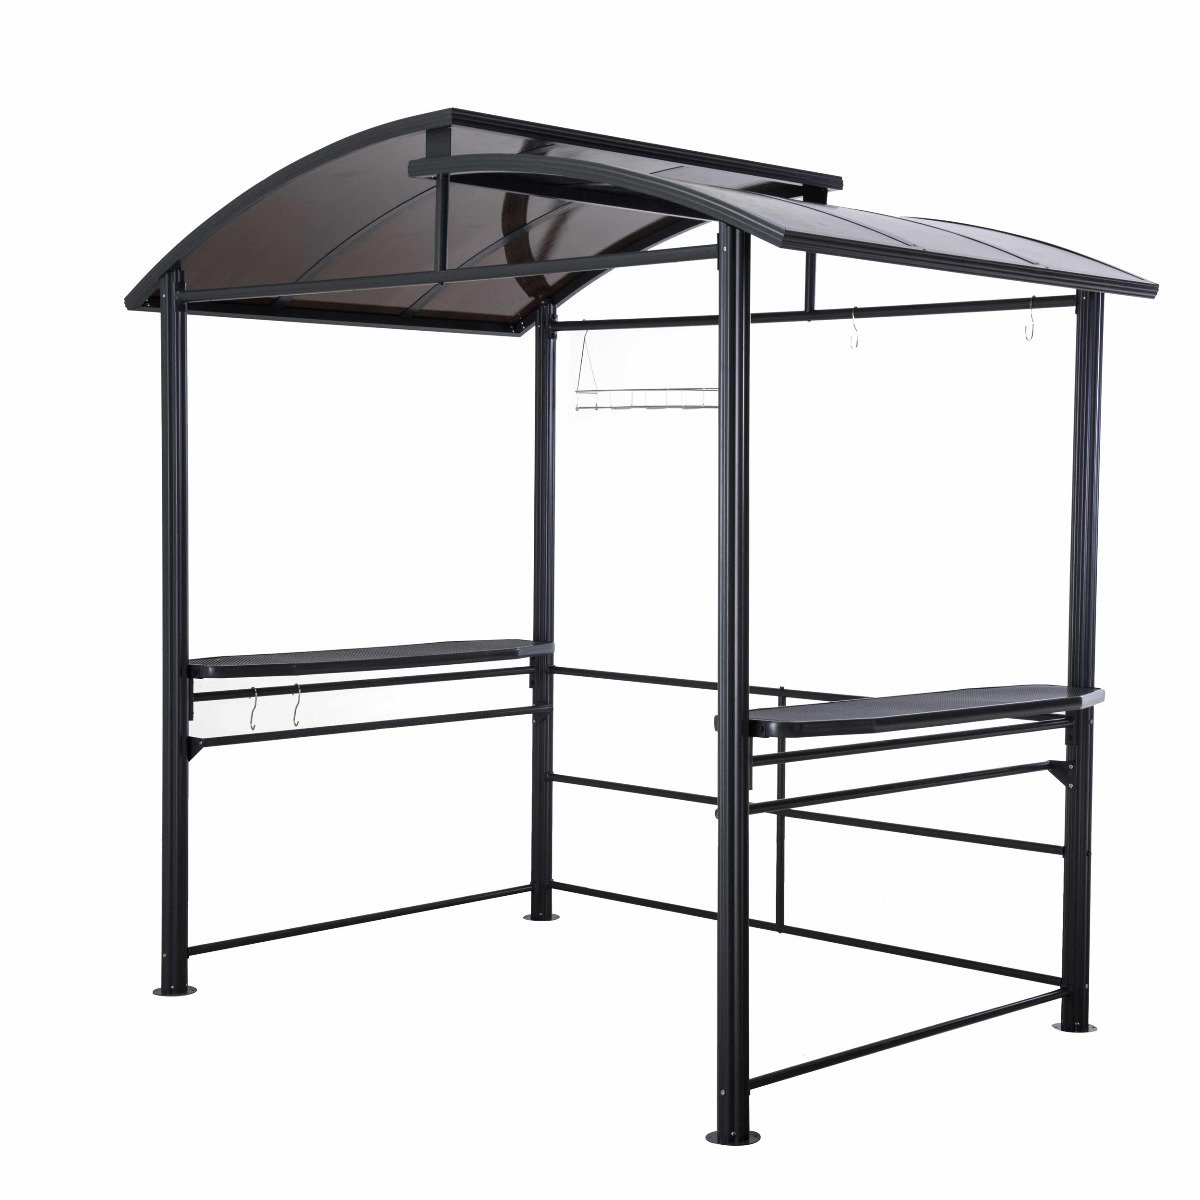 8 x 5 Denver Steel Hardtop Grill Gazebo with Polycarbonate Roof by sunjoy